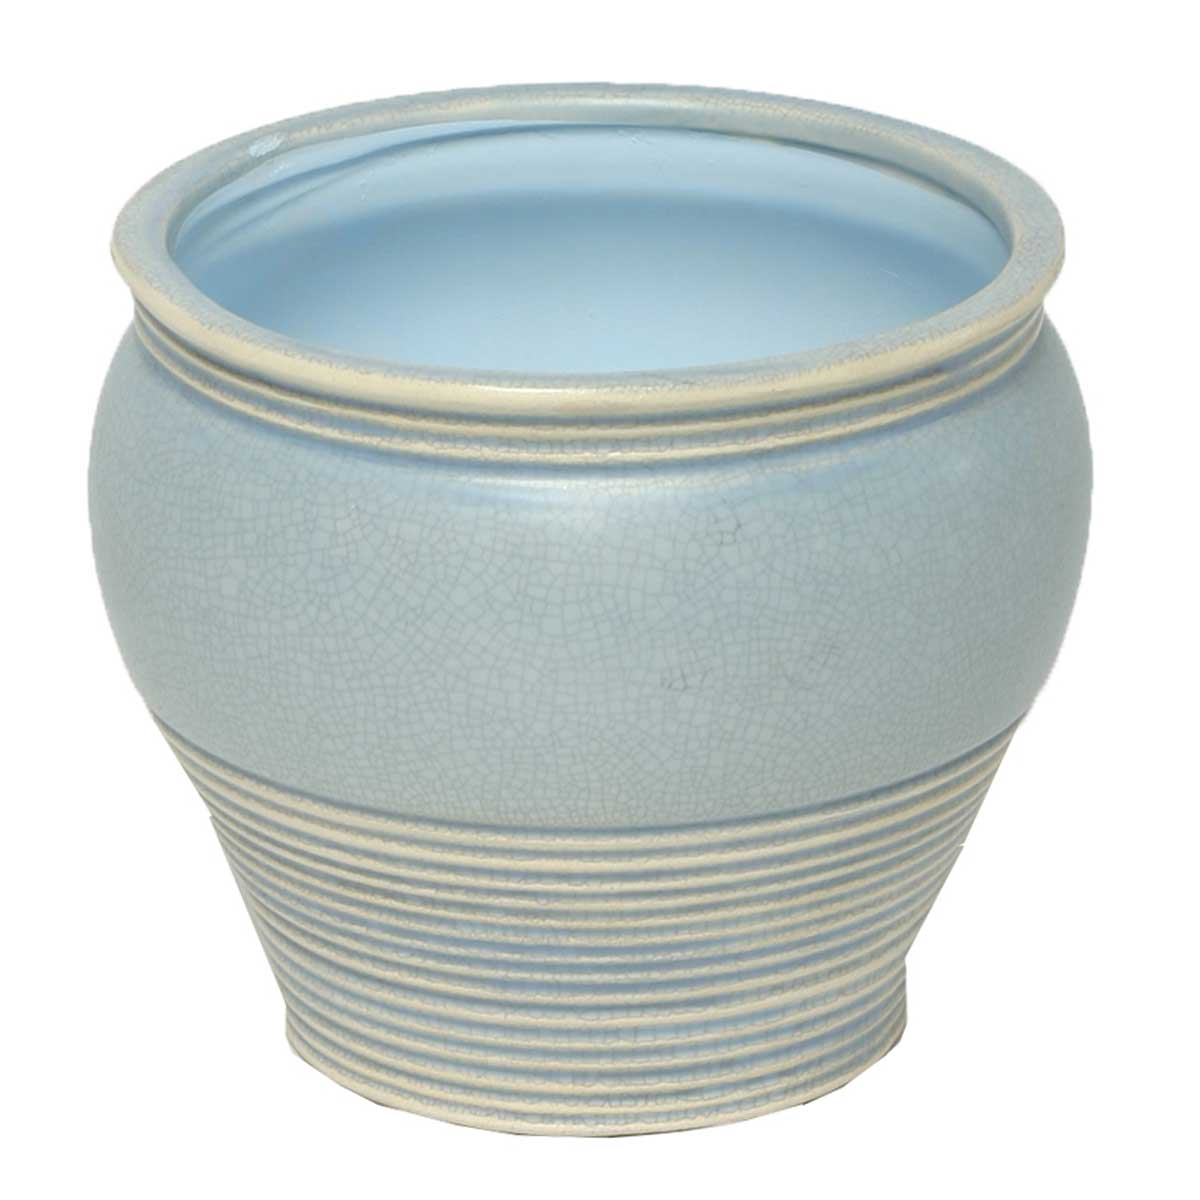 "RIBBED CRACKLE POT 5.5"" X 5.5"" BLUE 50b"